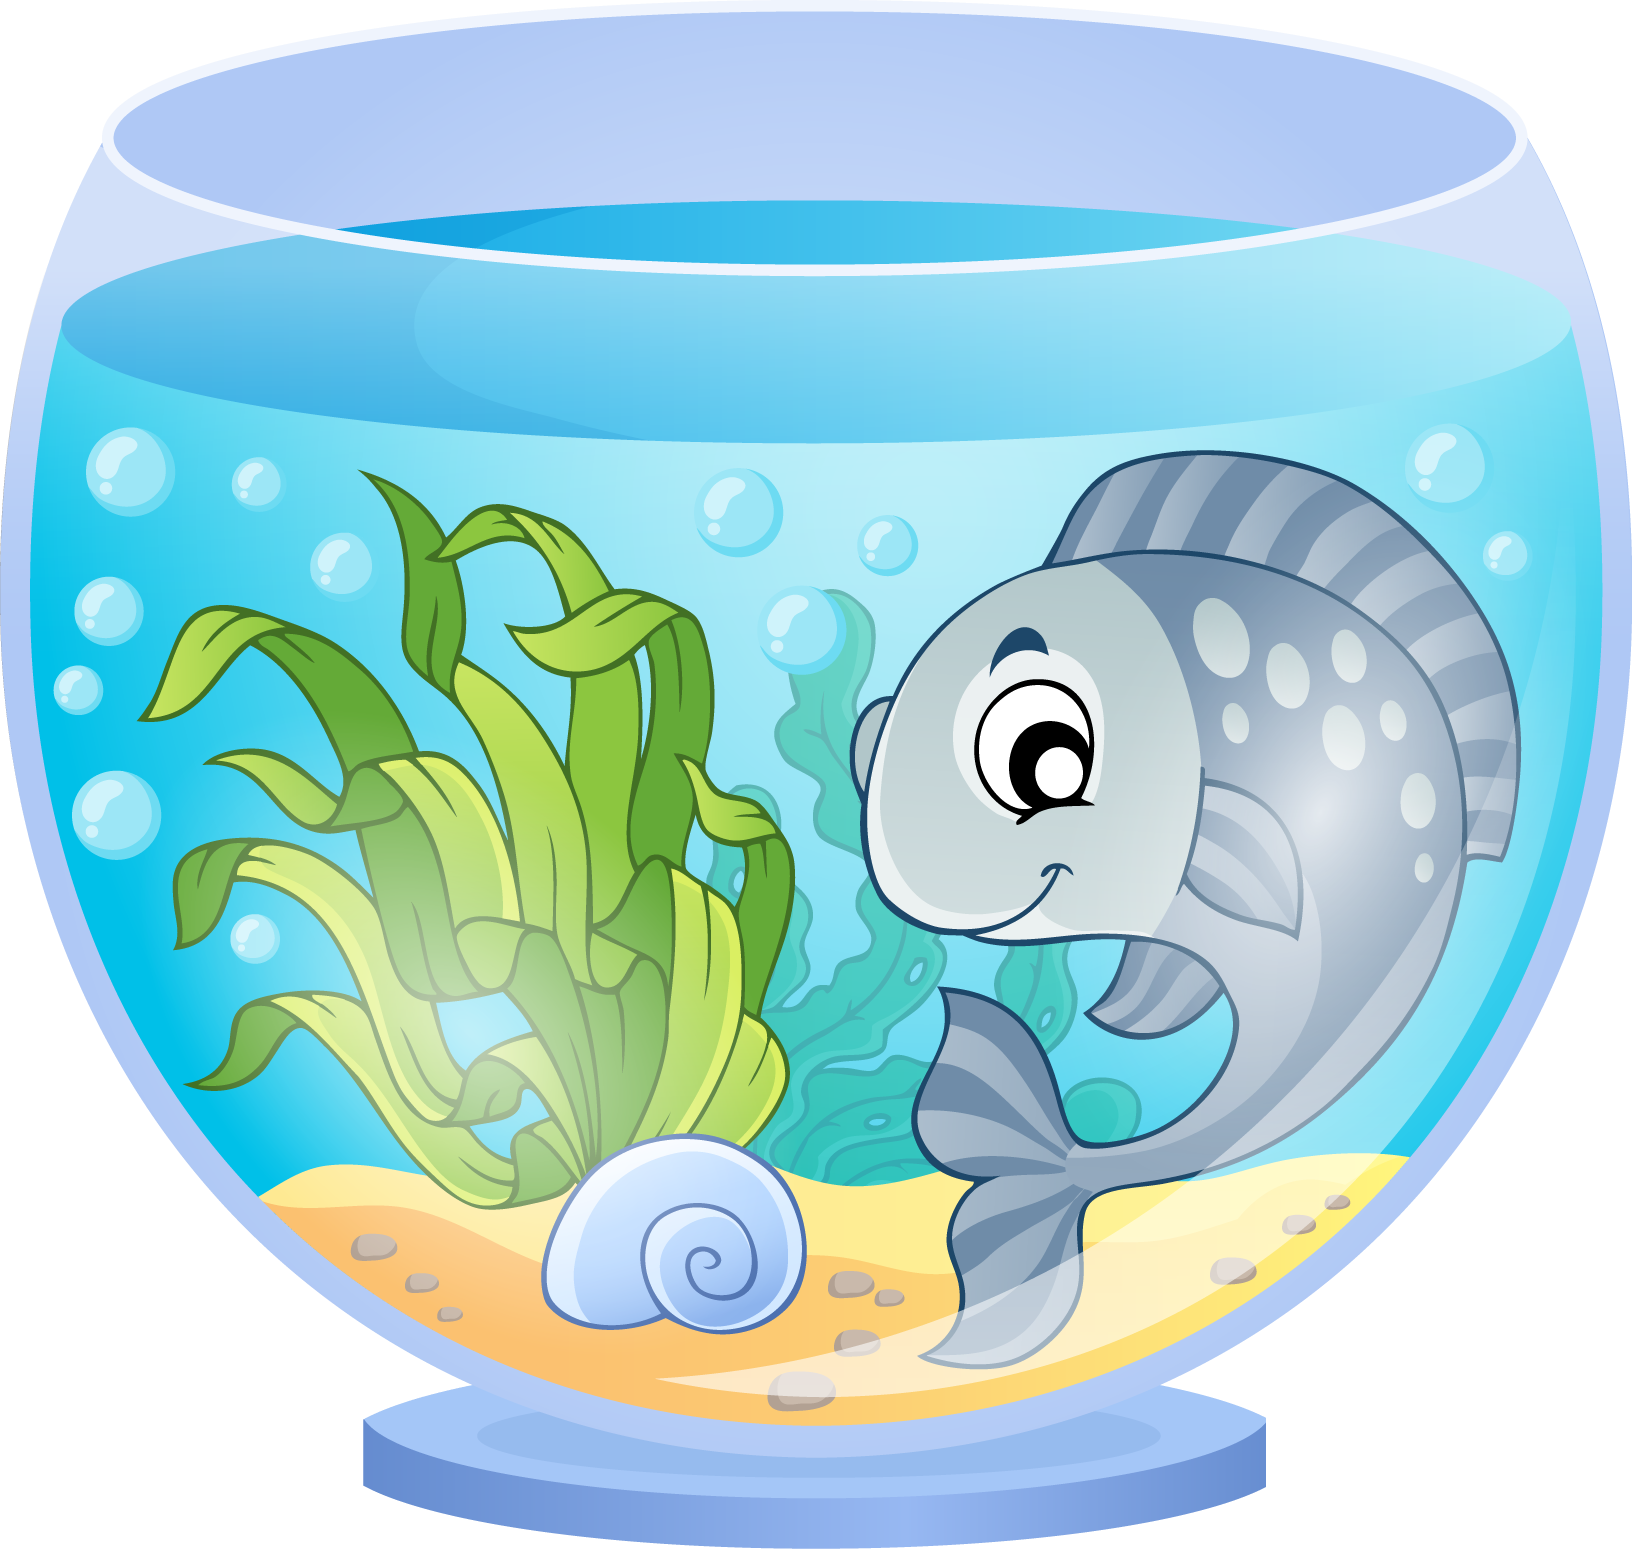 Fish tank decorations clipart graphic freeuse download Aquarium Cartoon Goldfish - Blue fish and fish tank 1632*1549 ... graphic freeuse download